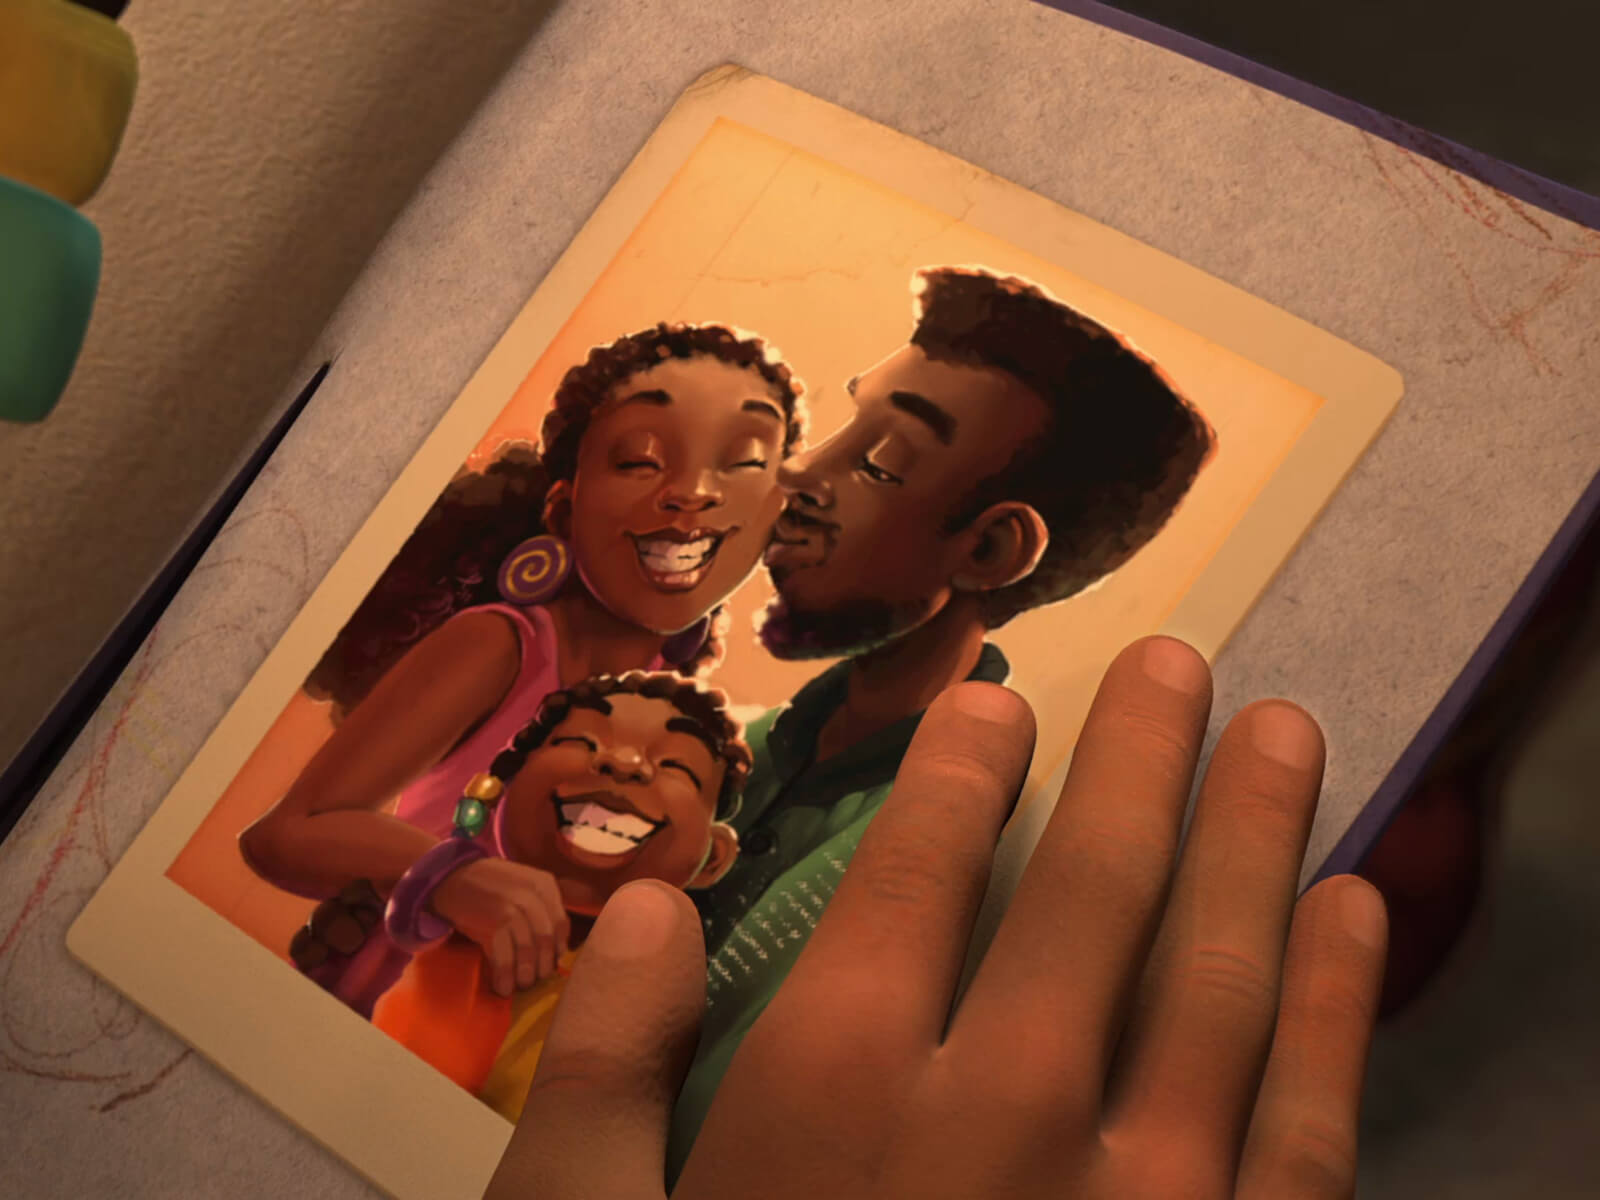 Screen capture from the student film Adija. A young girl looks at a happy family photograph.